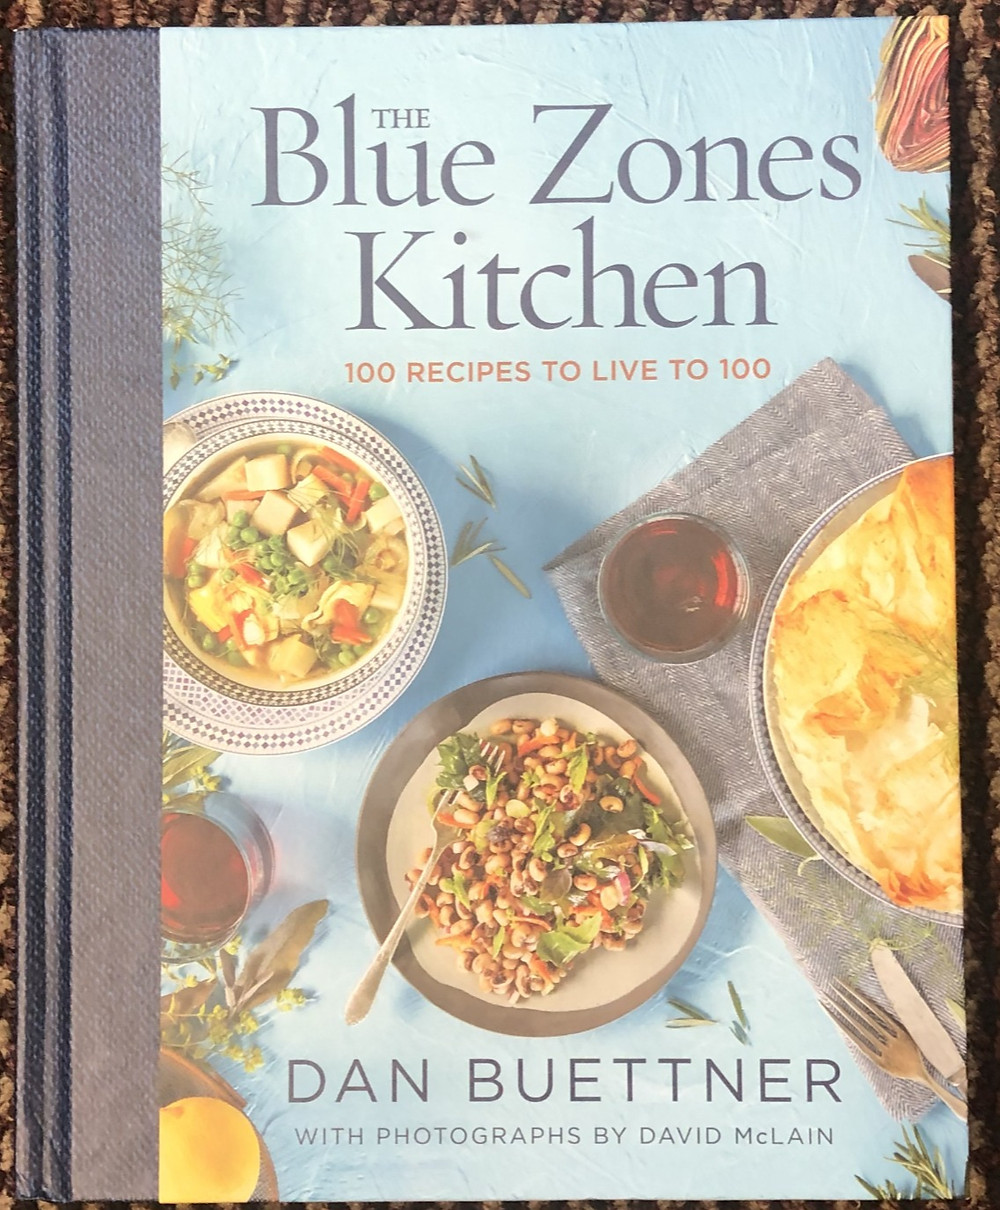 COOKBOOK WITH DELICIOUS LONGEVITY RECIPES